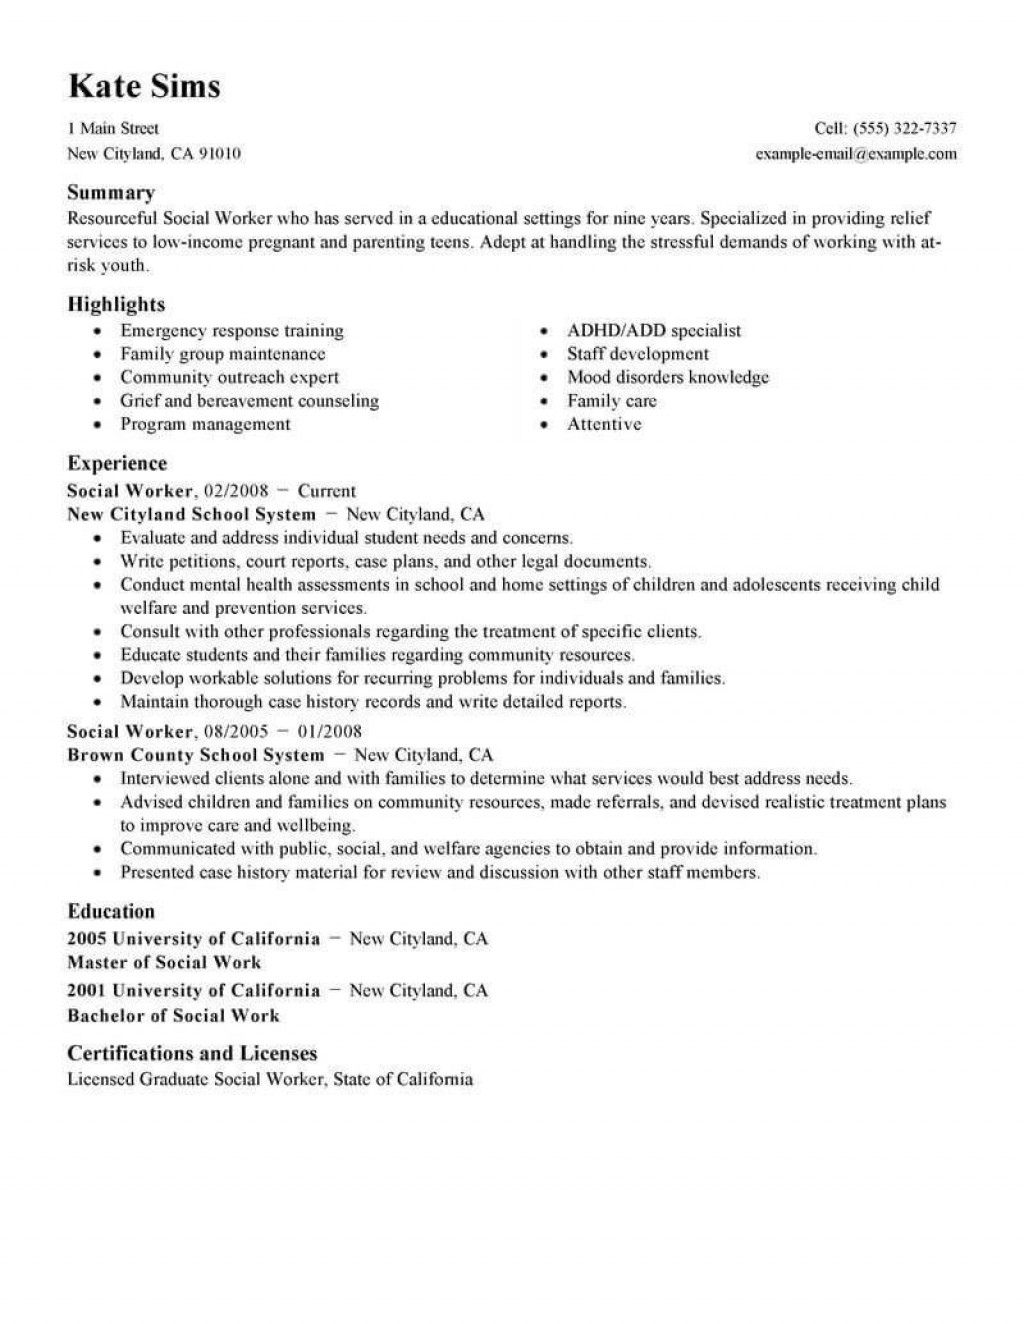 Social Worker Resume Template from www.addictionary.org